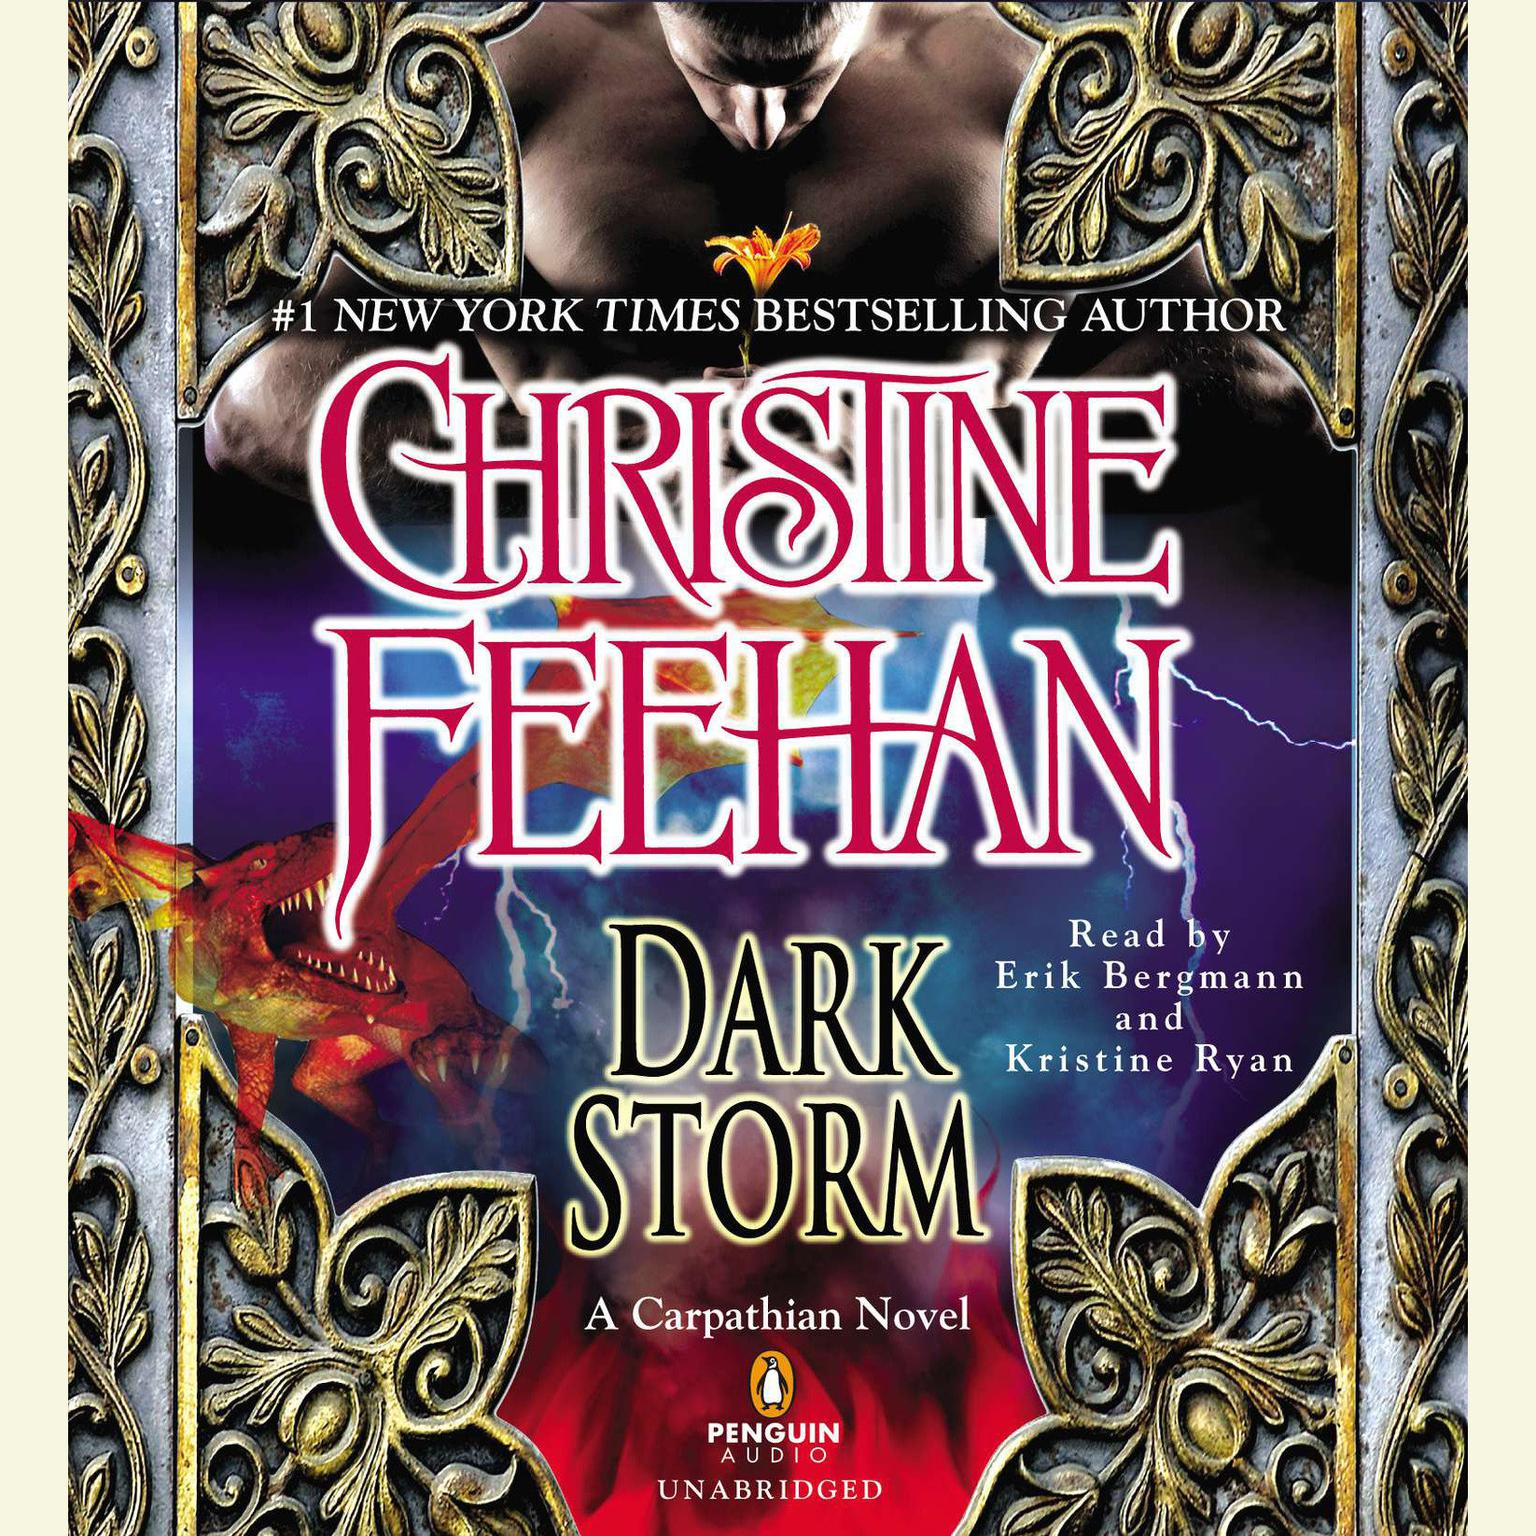 Printable Dark Storm: A Carpathian Novel Audiobook Cover Art